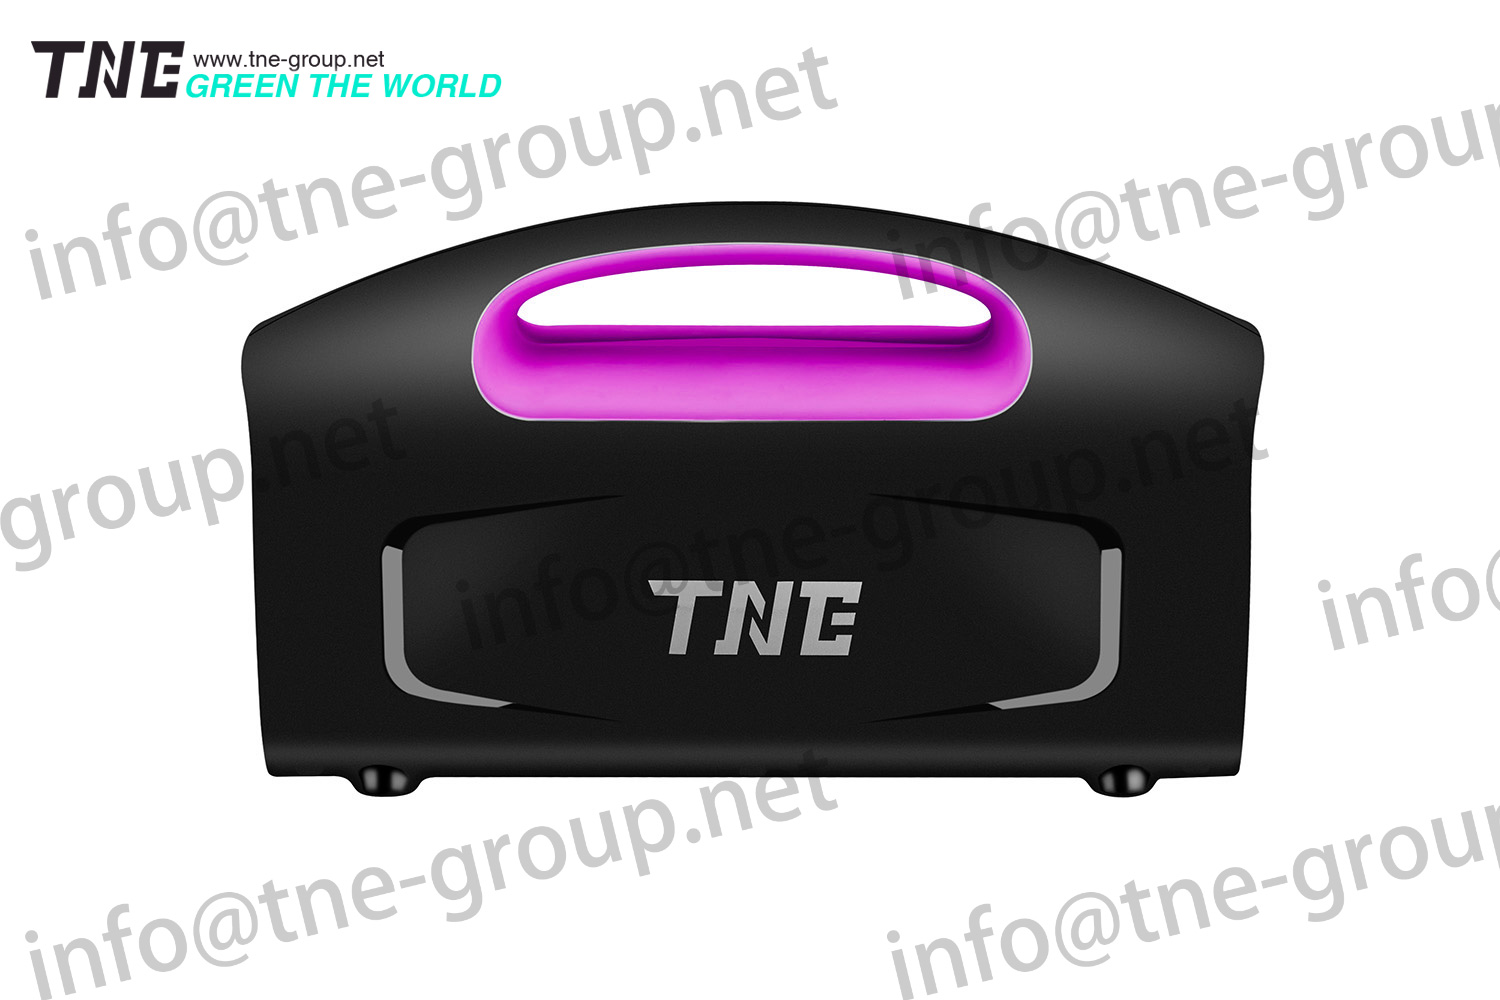 TNE Domestic solar power inverter dc 12v ac 220v UPS